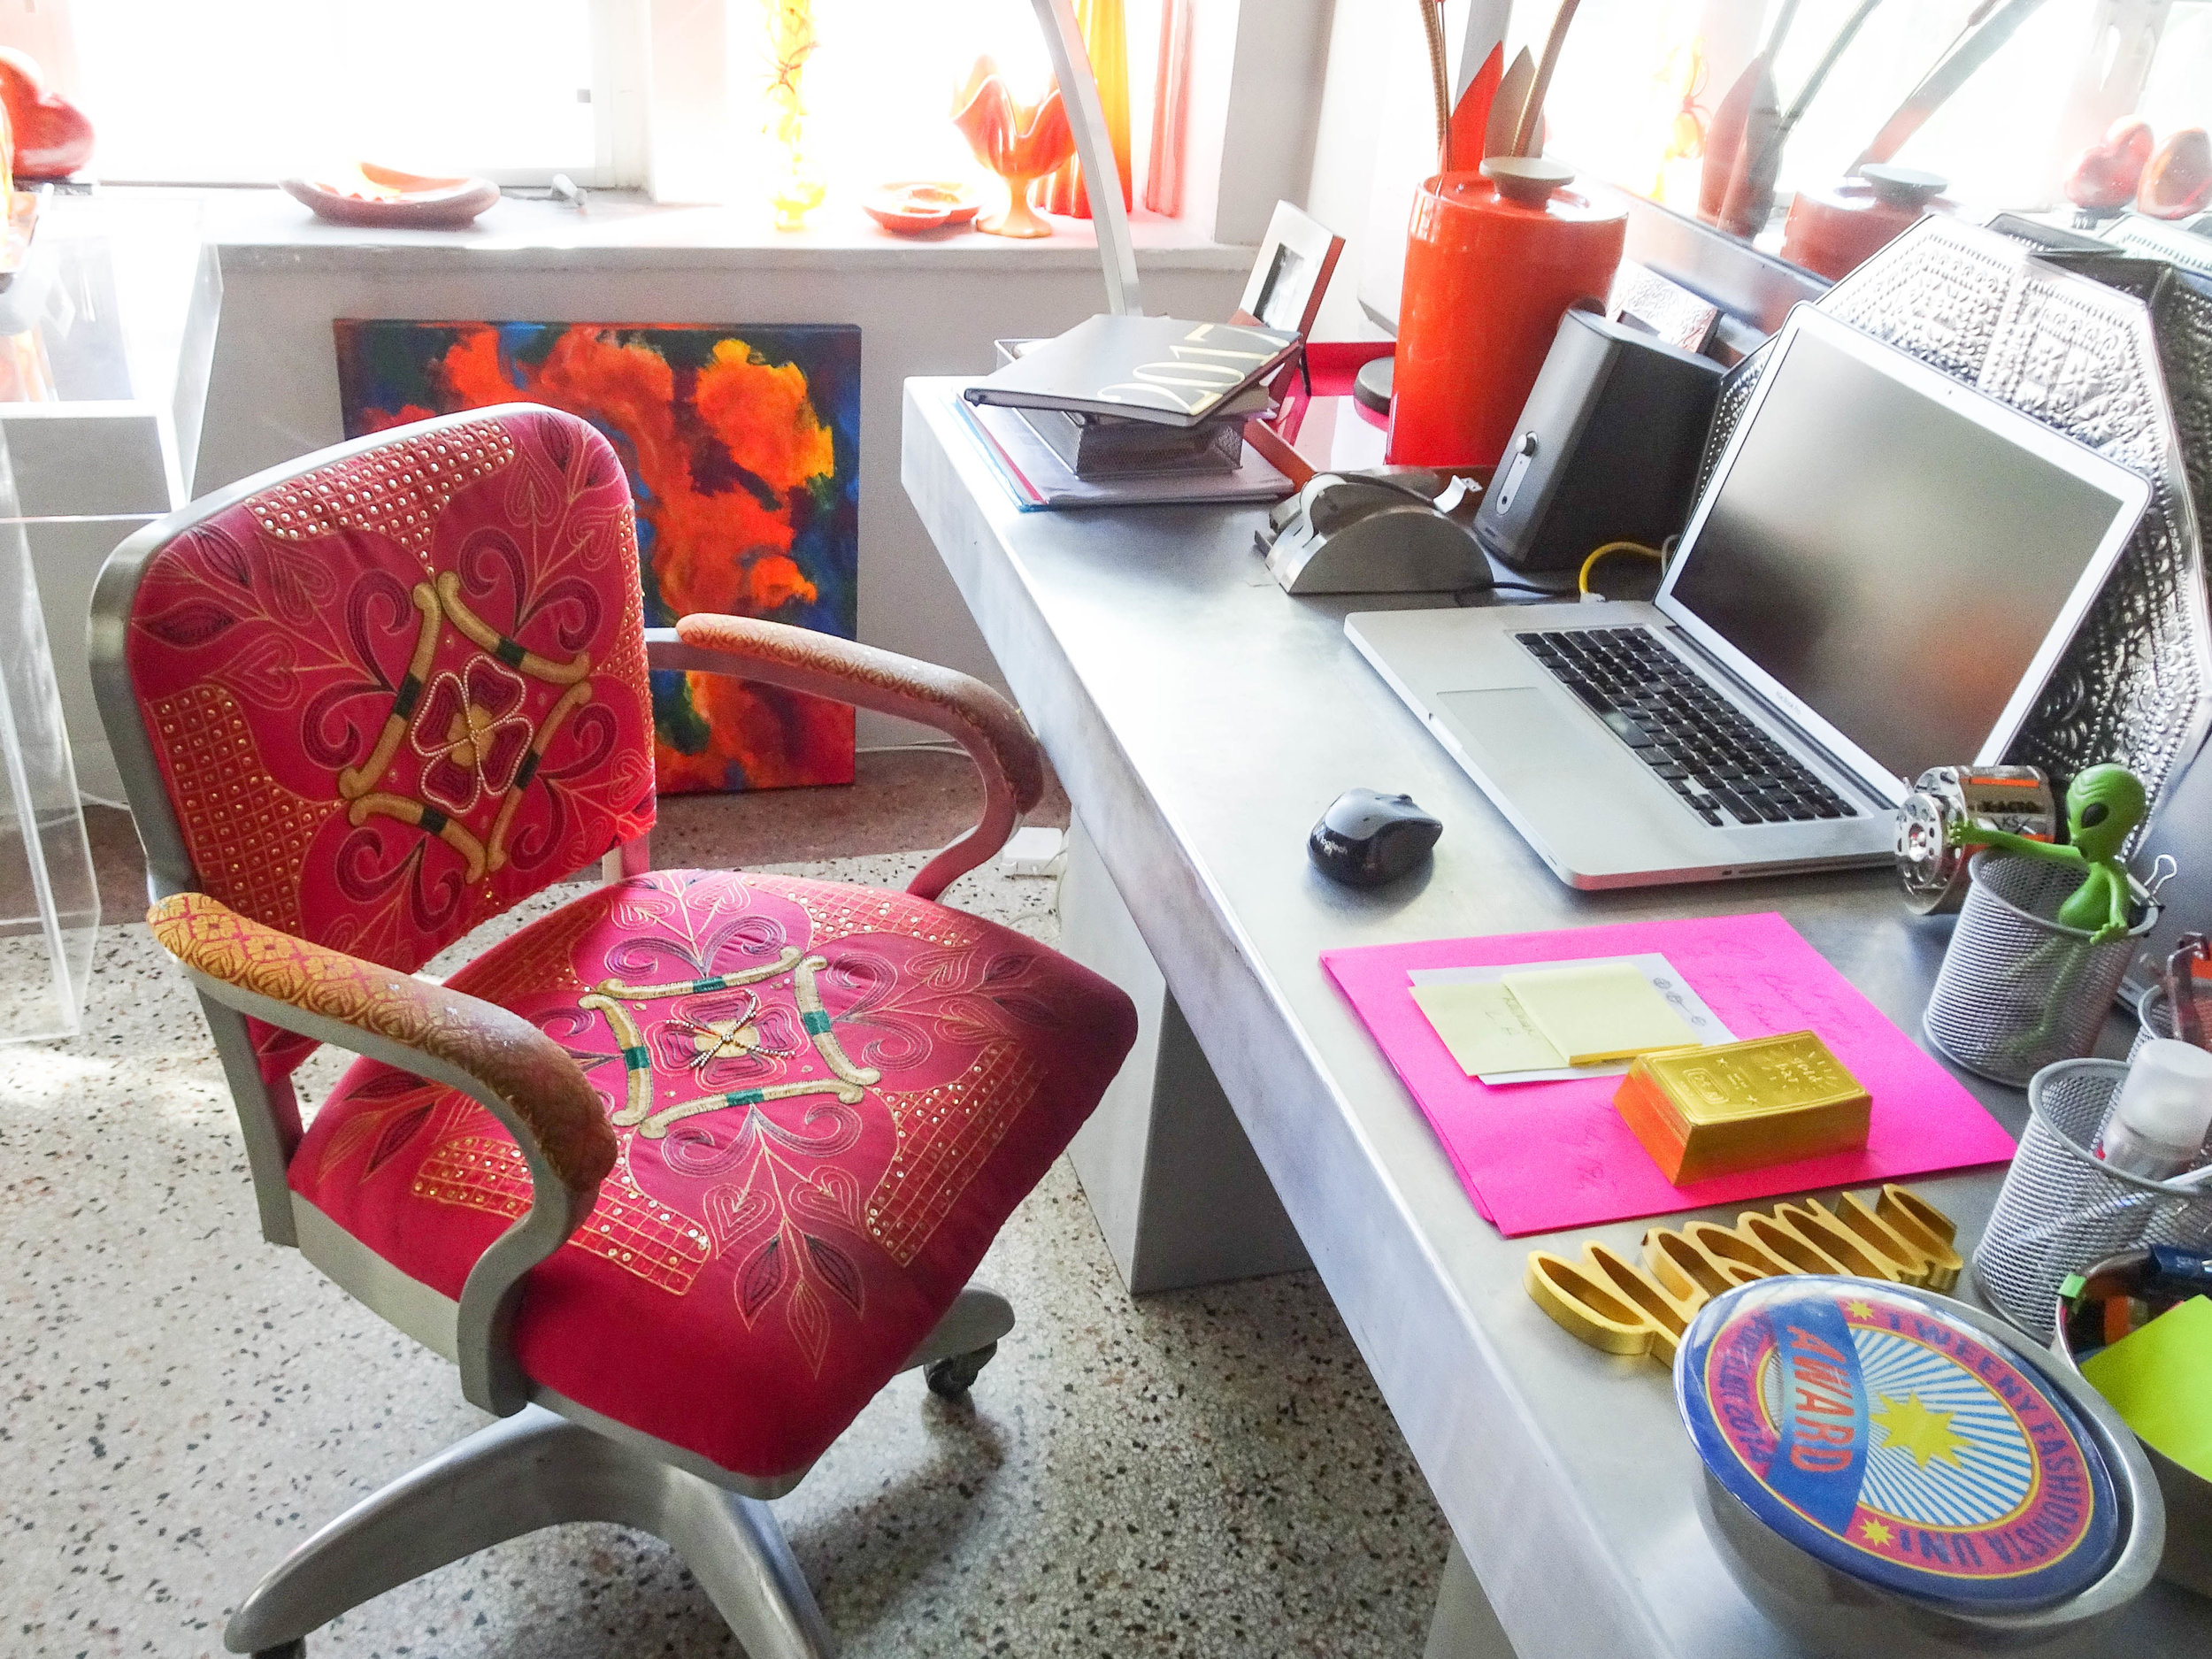 Barbara's steel desk with asian inspired upholstered office chair.